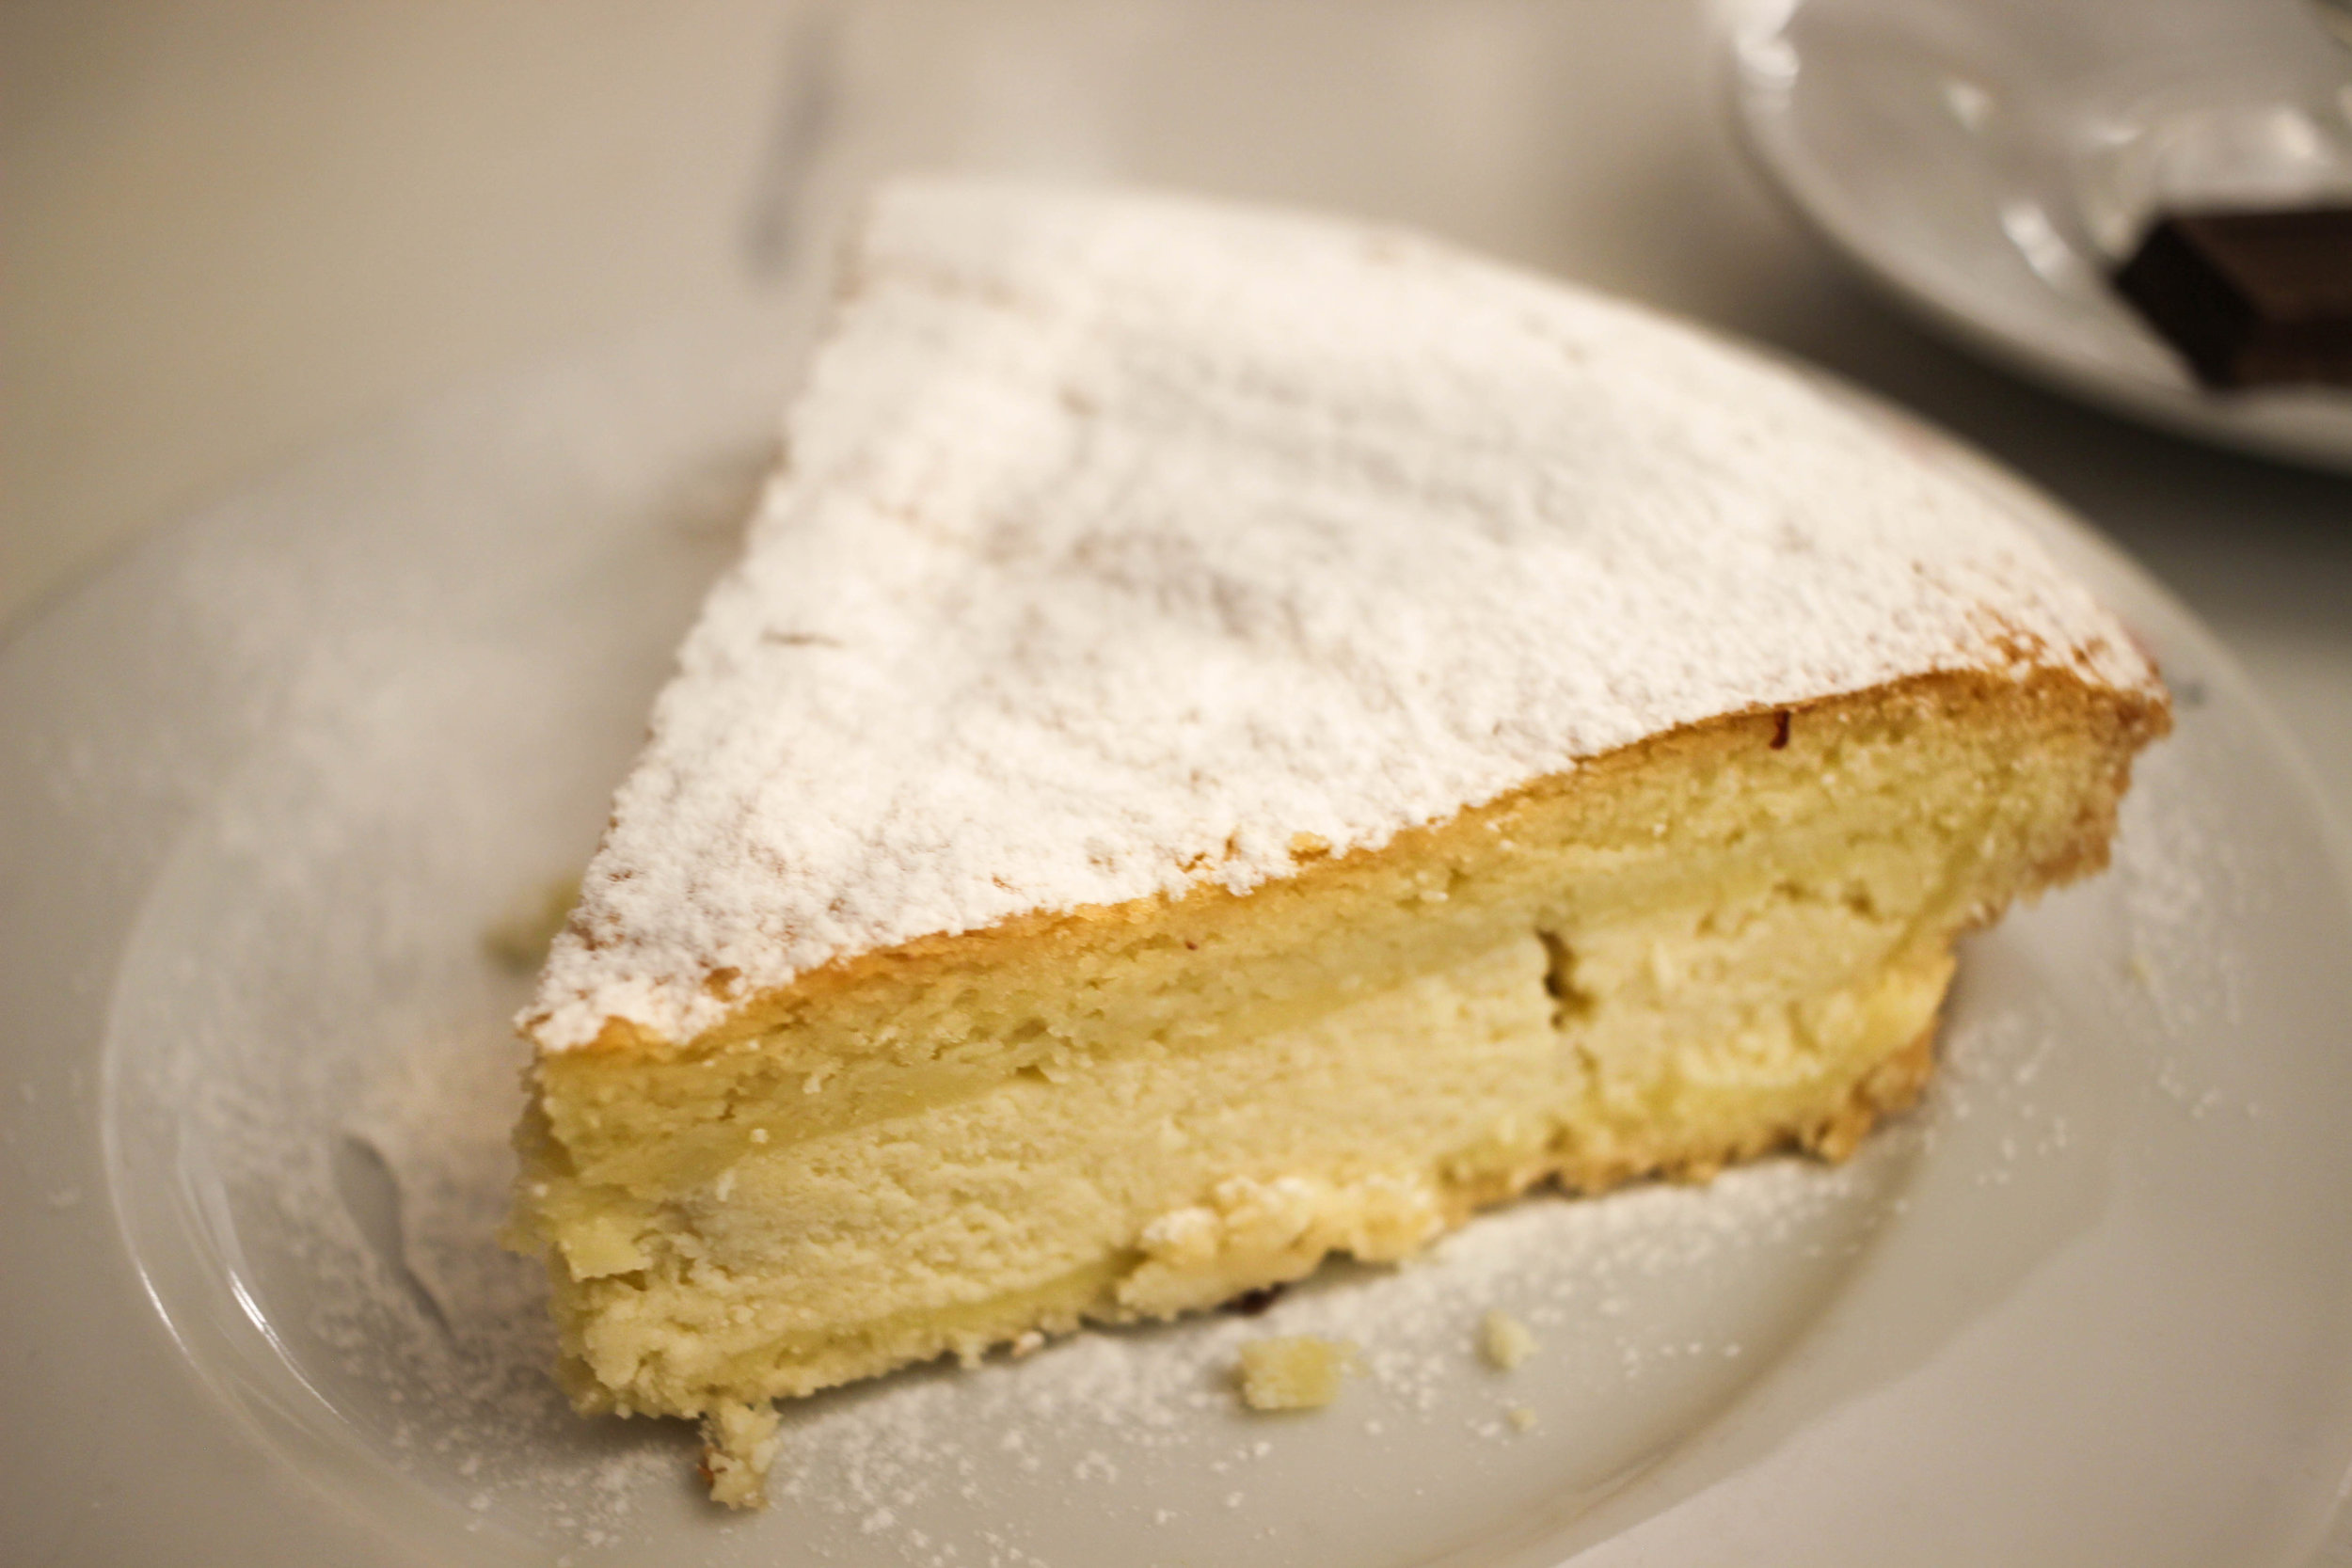 We also enjoyed the torta de ricota from Los 36 Billares